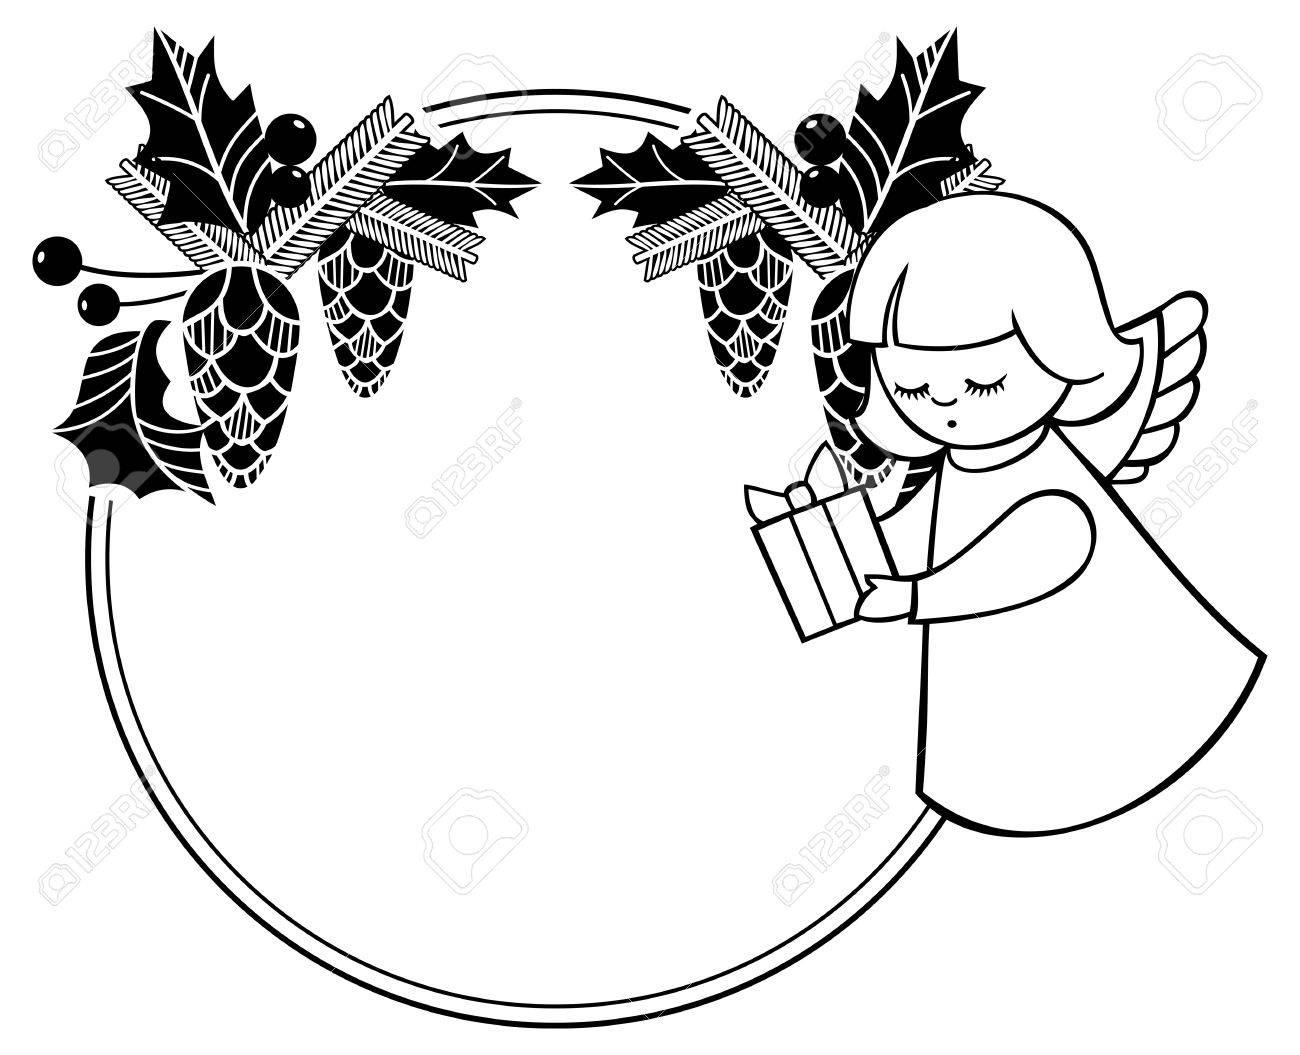 Black and white rouen Christmas frame with cute angels. Copy...